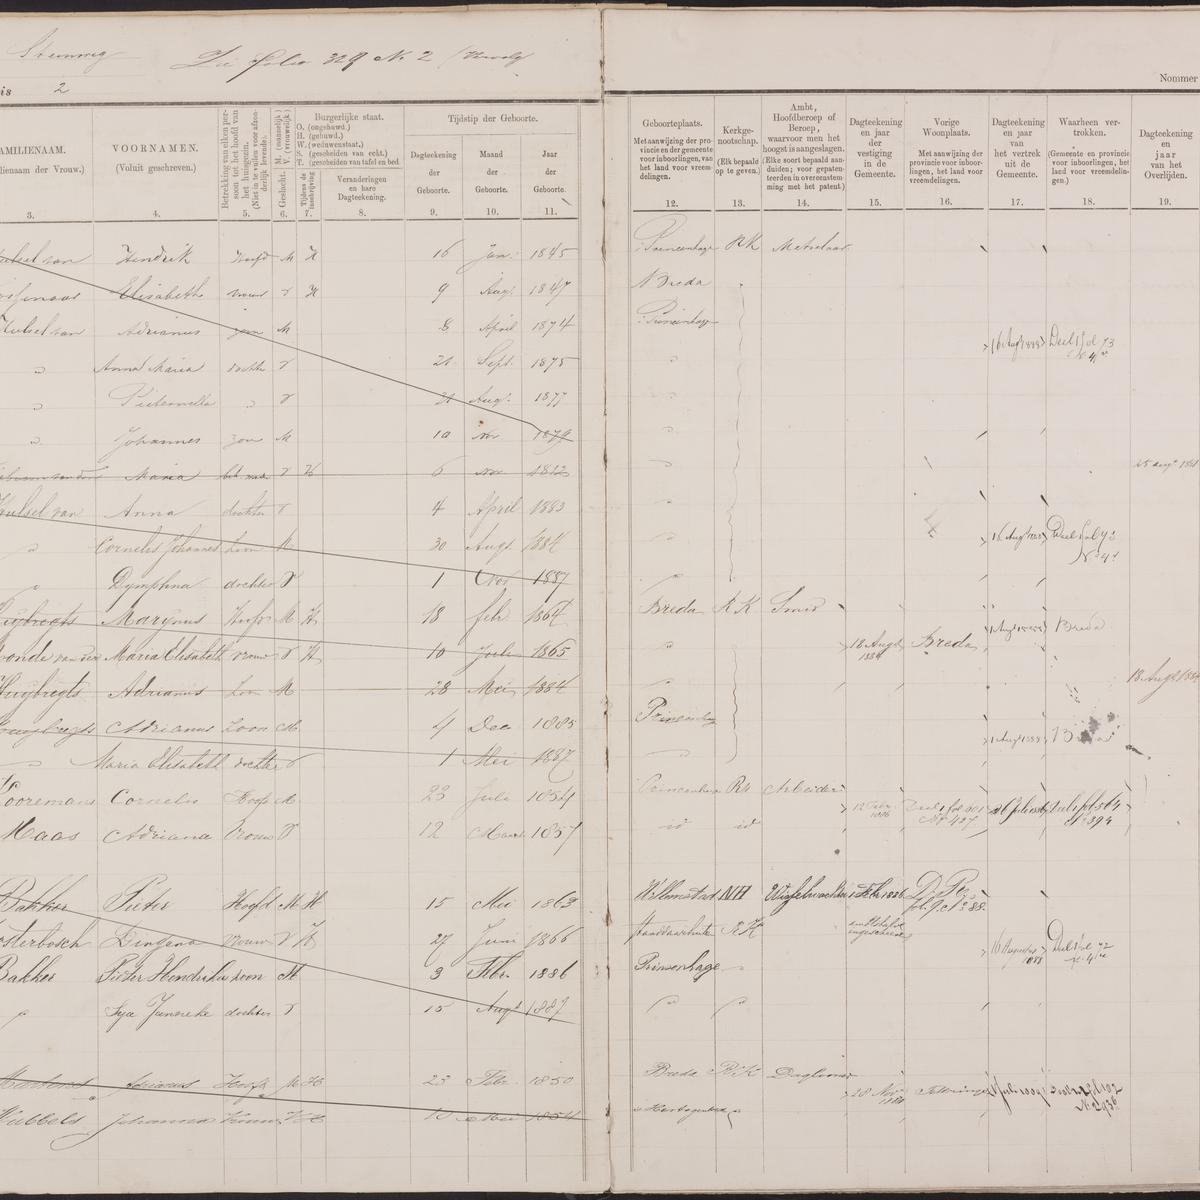 Population registry, Princenhage, 1880-1889, part 1, sheet 2